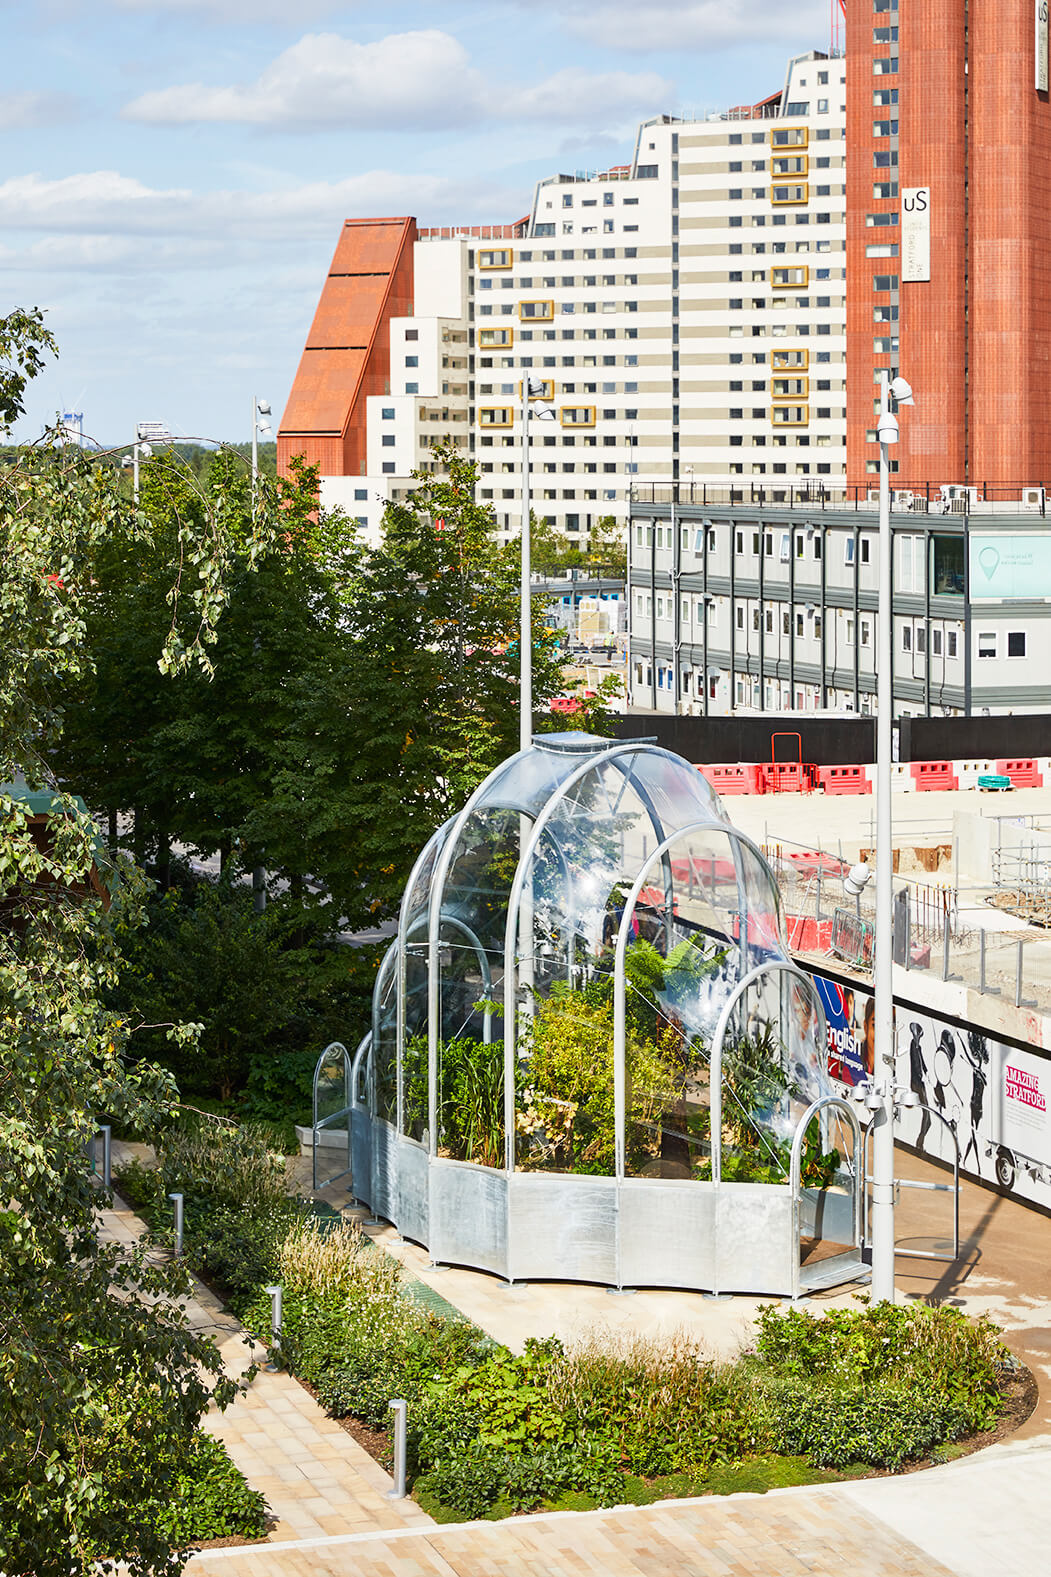 The Hothouse is an interesting commentary on the history of International Quarter London(IQL) | The Hothouse, Studio Weave | London Design Festival  | STIRworld